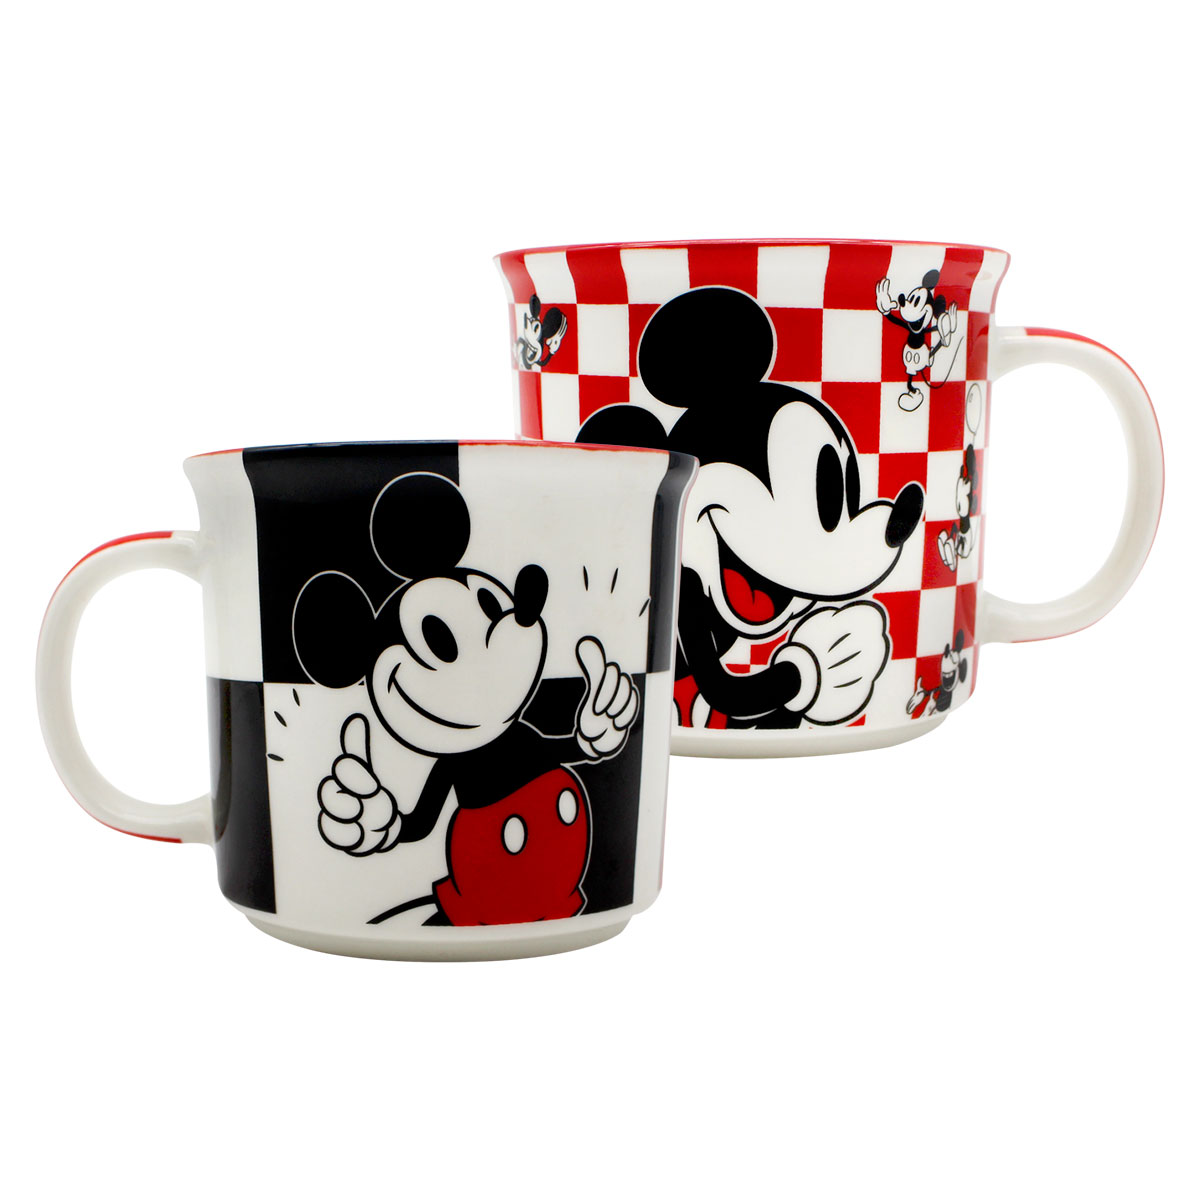 Caneca Mickey Mouse Xadrez 350 ml - Presente Super